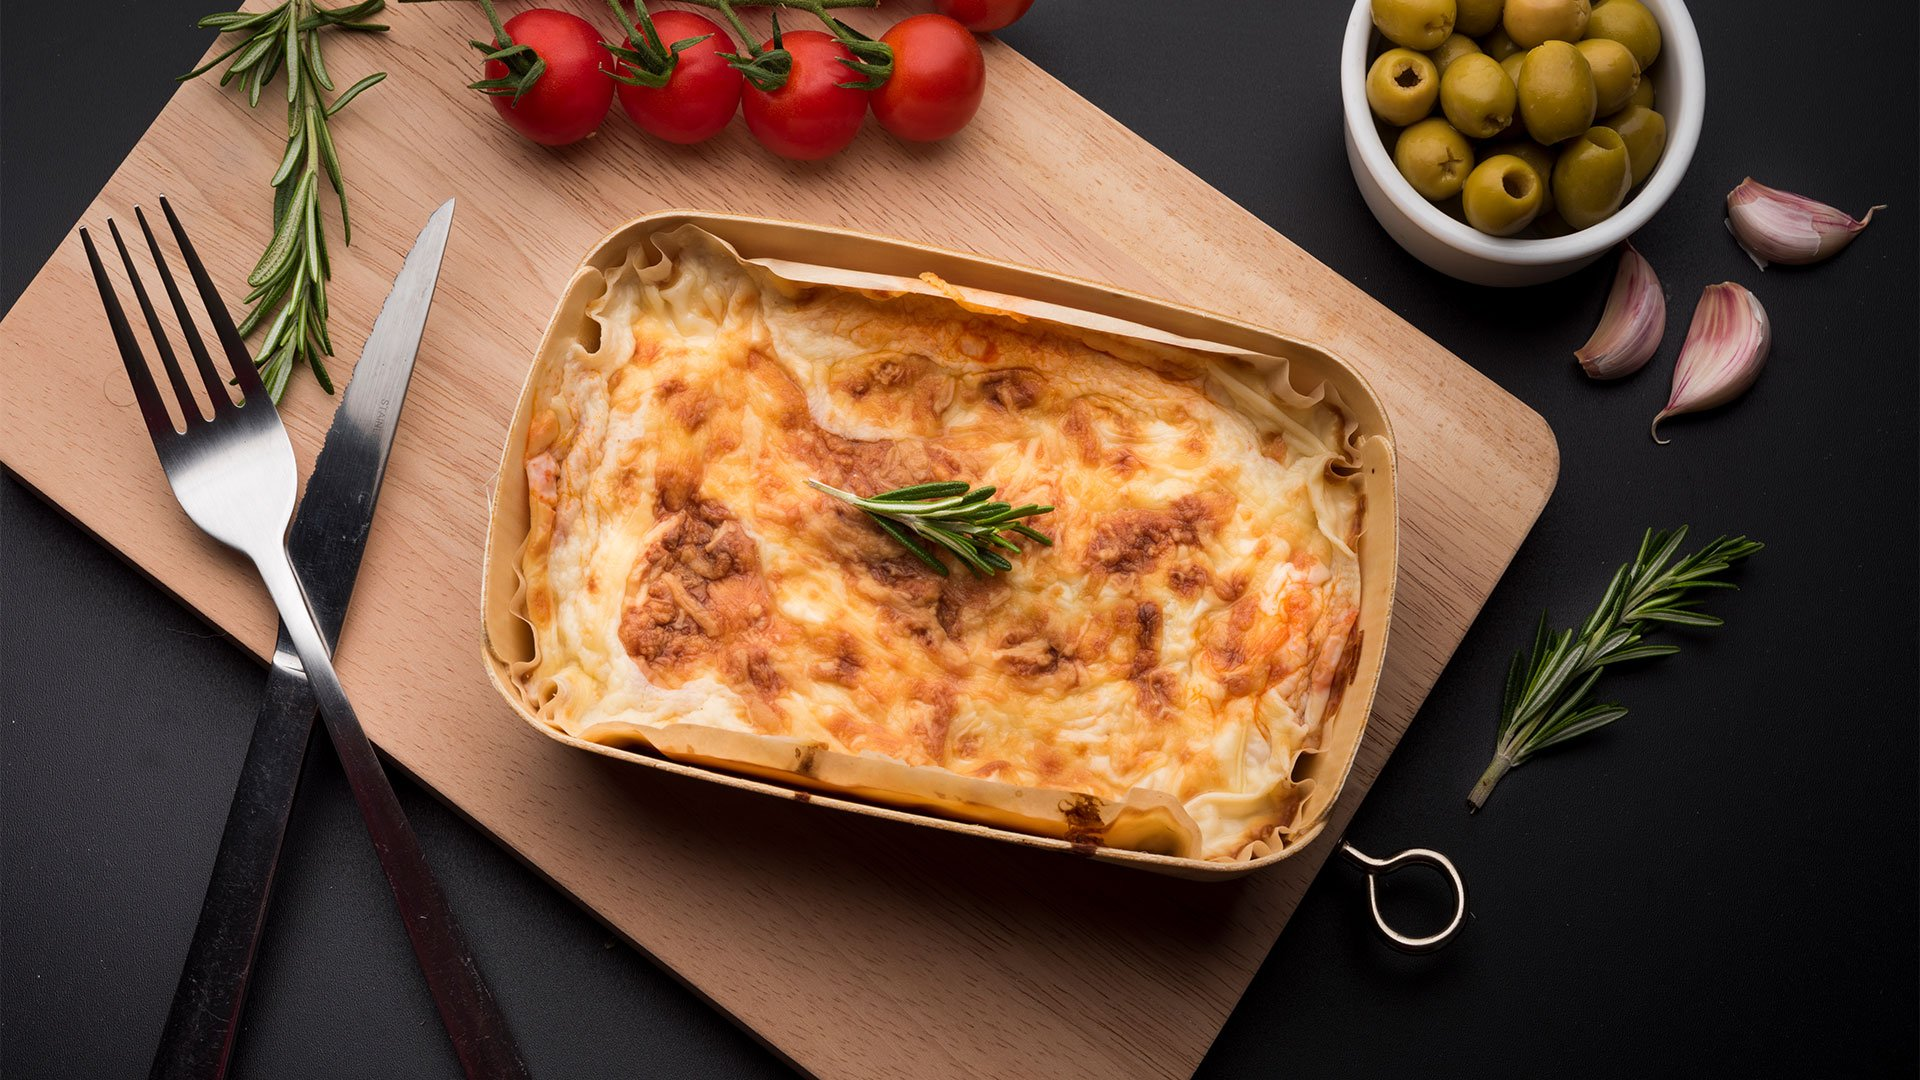 How to Make the Ultimate Lasagna